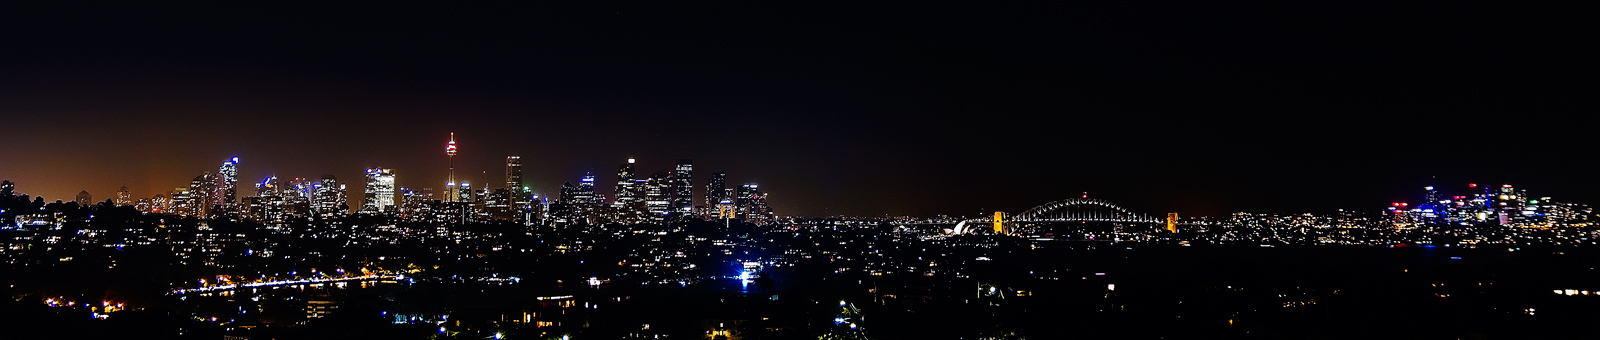 Sydney Night Panorama by TarJakArt